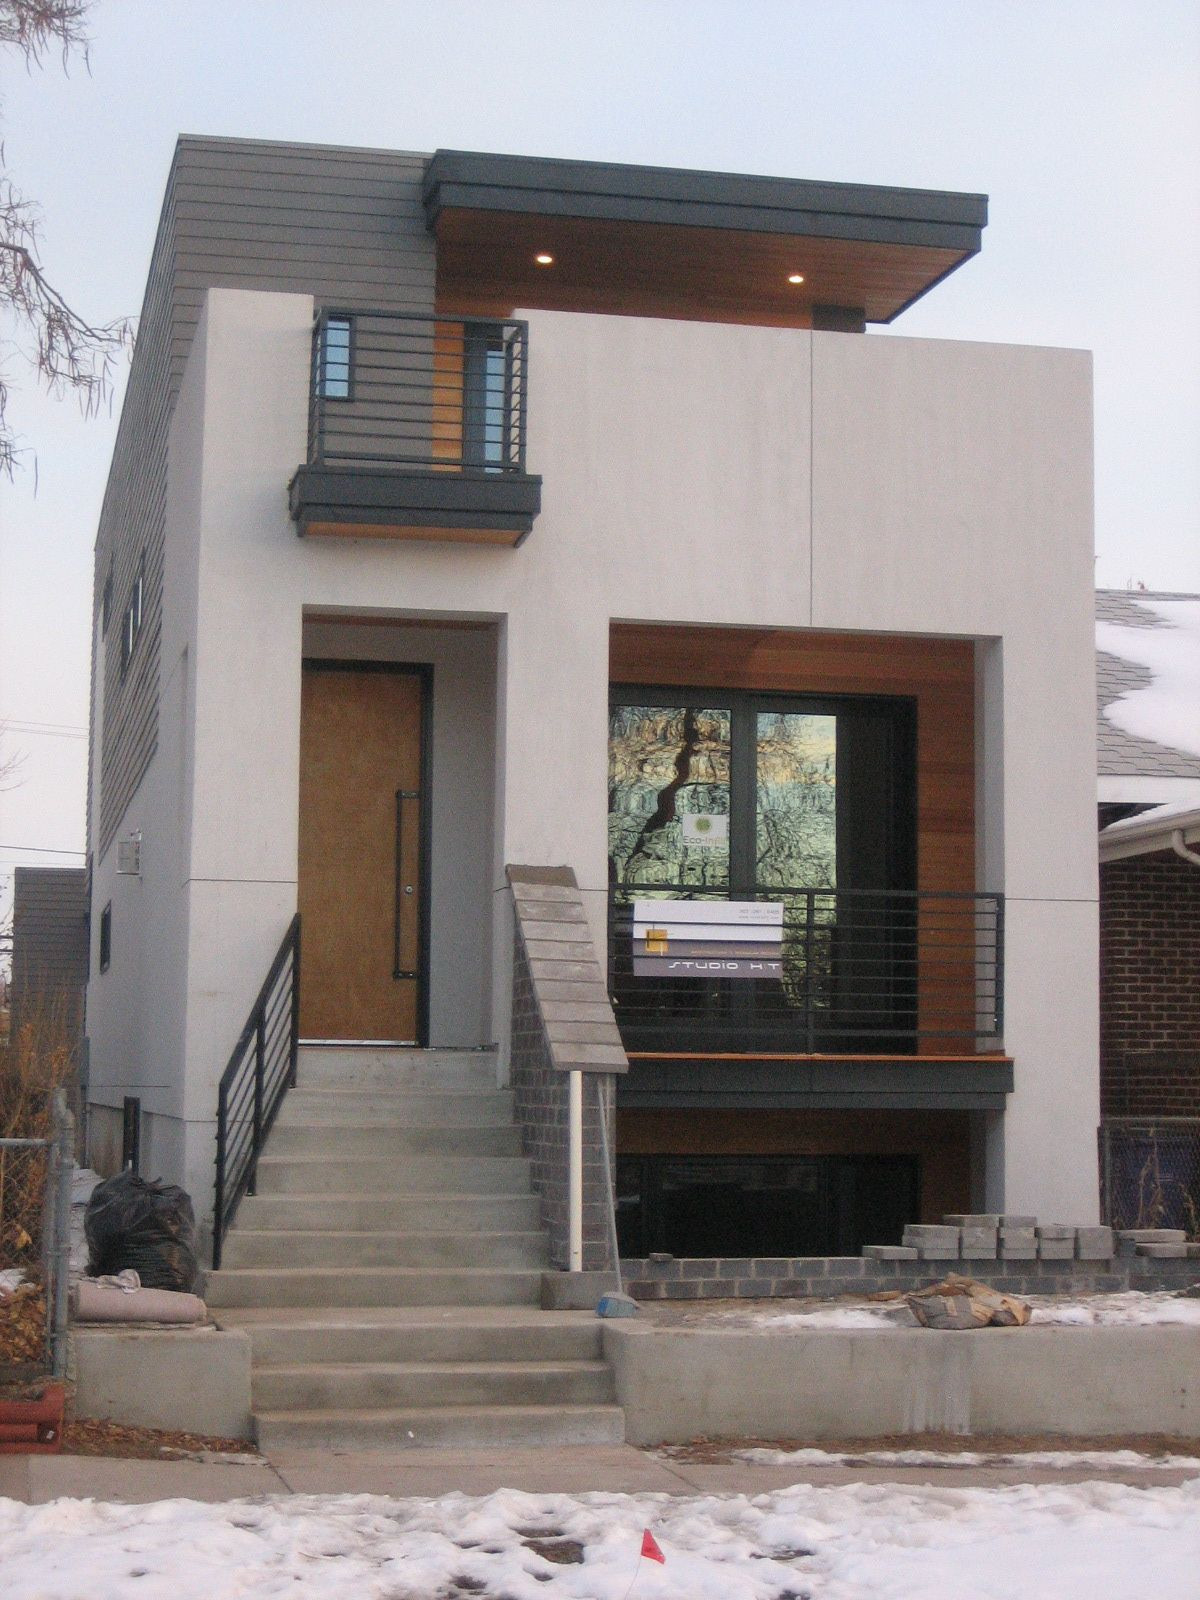 Minimalist Exterior Home Design Inspirational Architecture Inspiration Admirable Small House Types Plans